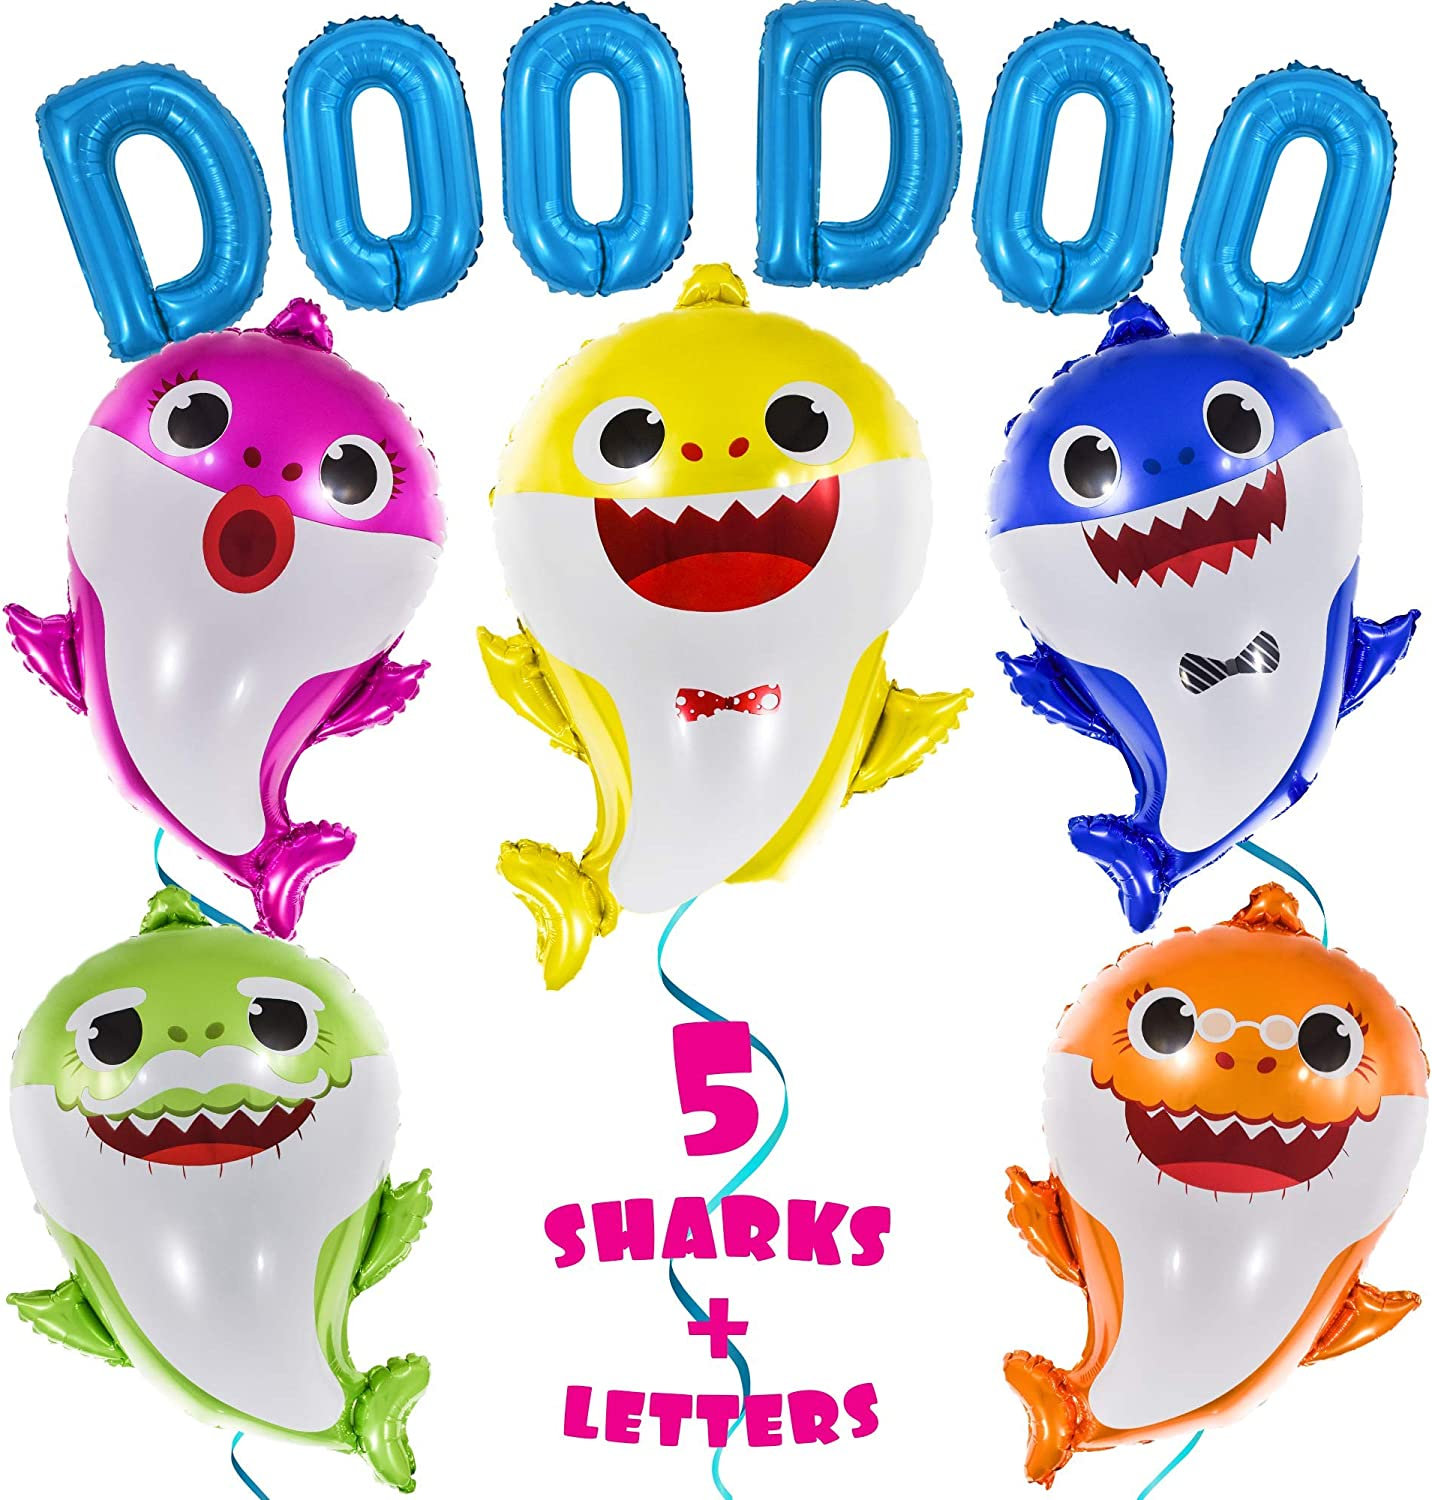 """OMG Party Factory - Huge 25"""" Baby Shark Balloons + 16"""" 'DOO DOO' Letters - Cute Birthday Party Decorations & Supplies Helium Mylar Foil Balloons - All Family Members Included Doo Doo (5pcs + Letters) Globos Para Fiestas"""